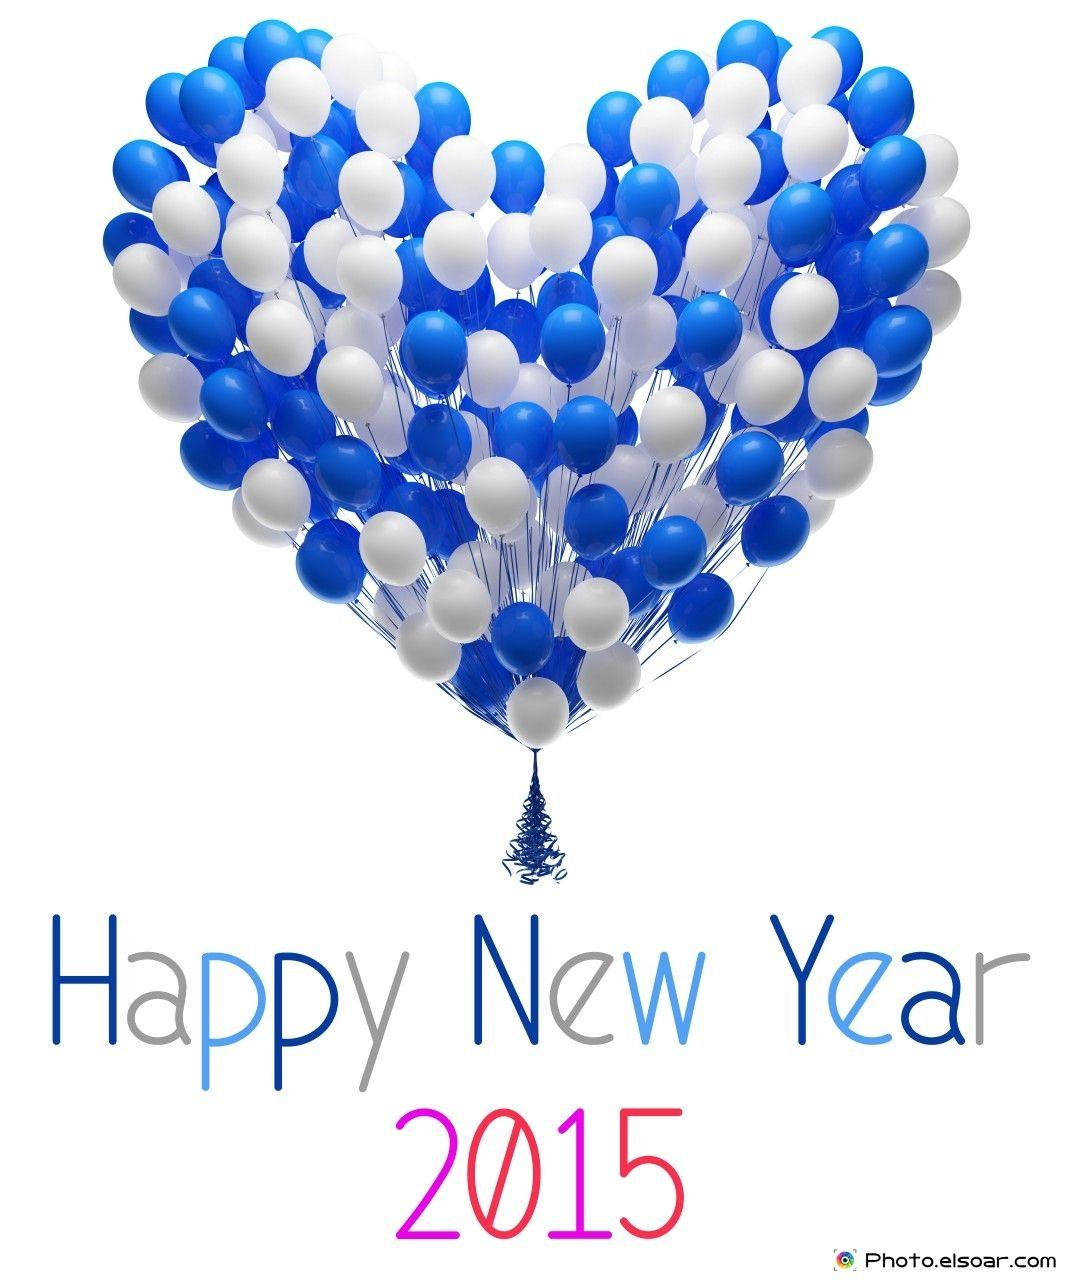 Wallpaper download new year 2015 - Happy New Year 2015 Wallpapers Techjost Download